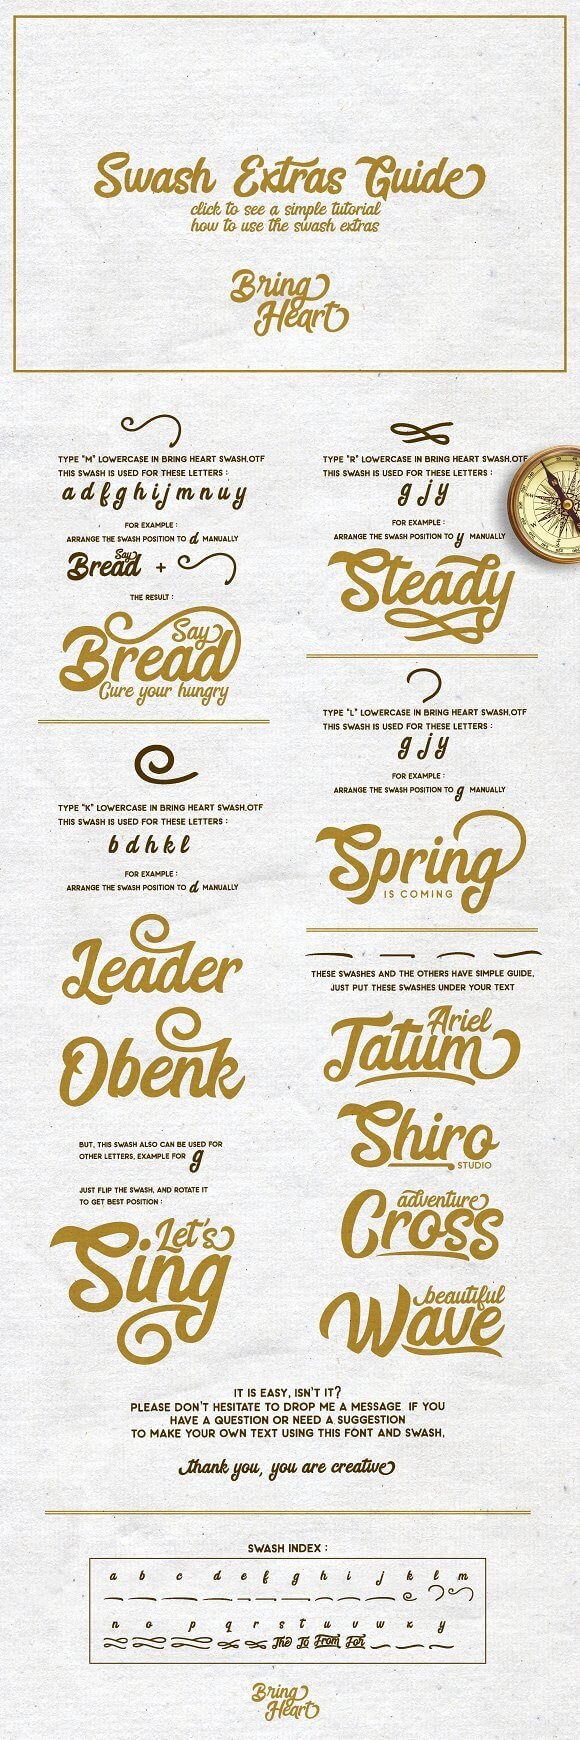 Best Selling Gorgeous Fonts 10-extras-guide-